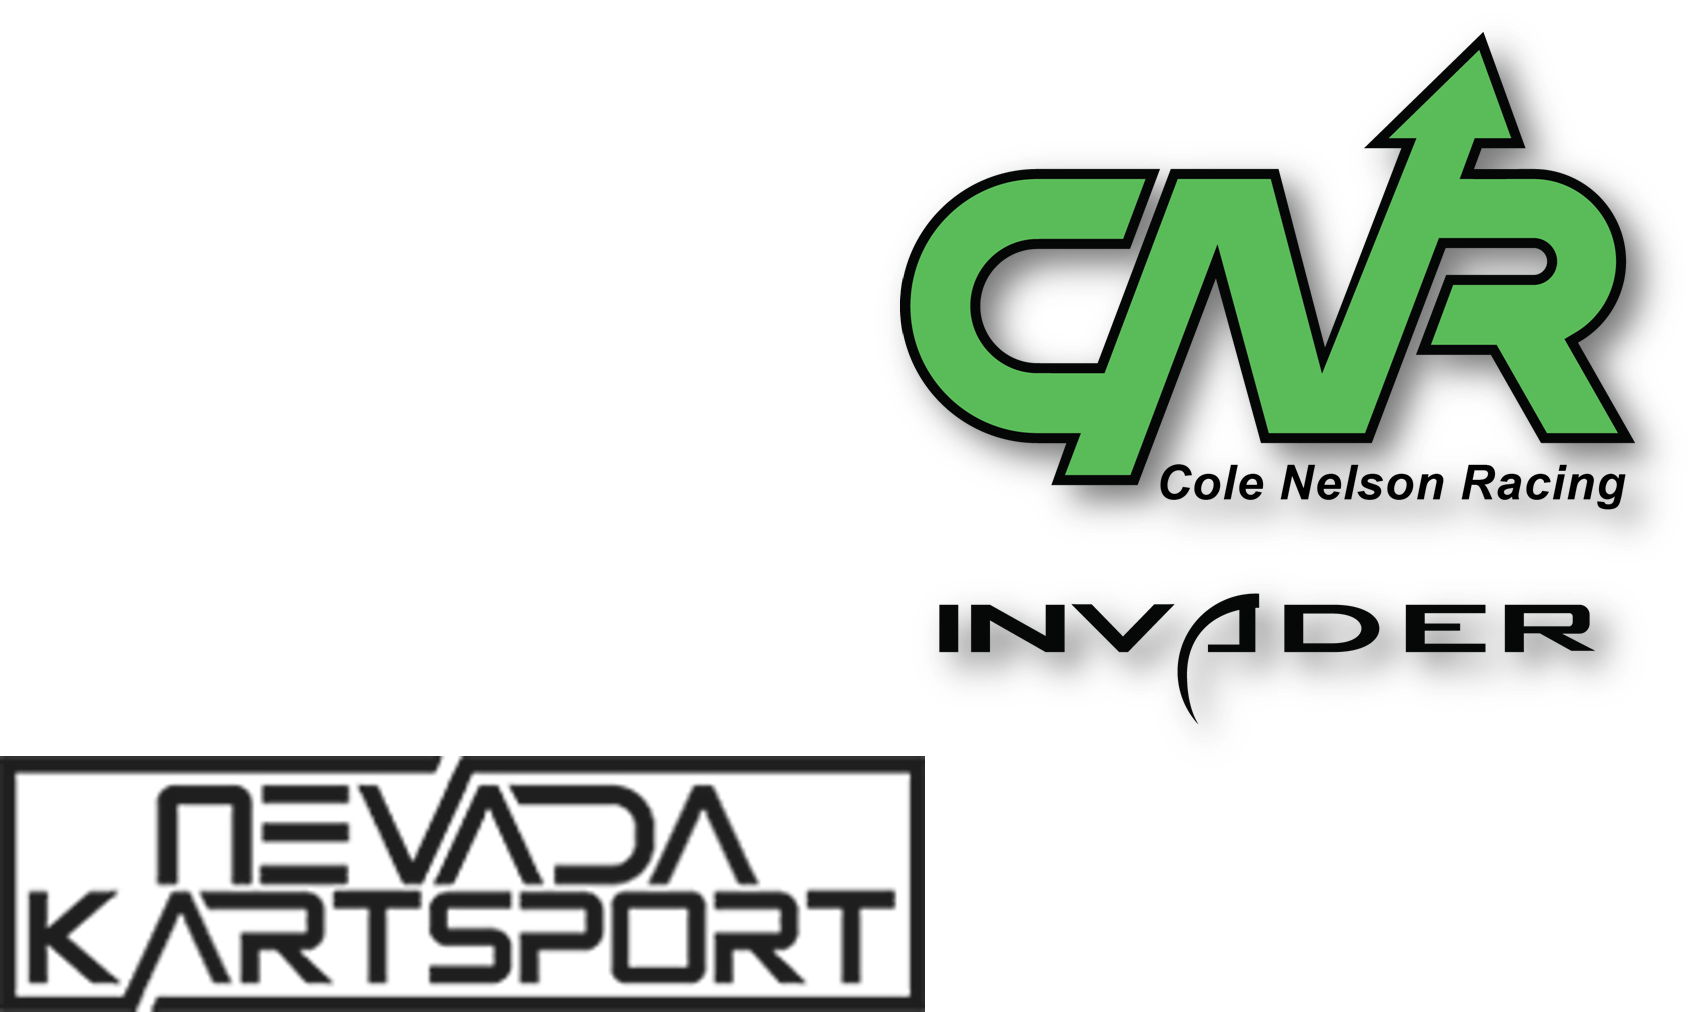 Local to Reno - There are a couple resources in Reno for buying kartsCole Nelson Racing: www.colenelsonracing.com cnelsonracing18@yahoo.com|209.631.5656 -Building American made Invader karts since 1974Nevada Kartsport Racing Team: 775.219.4184 nevadakartsport@yahoo.com -Birel Dealer for Reno NV